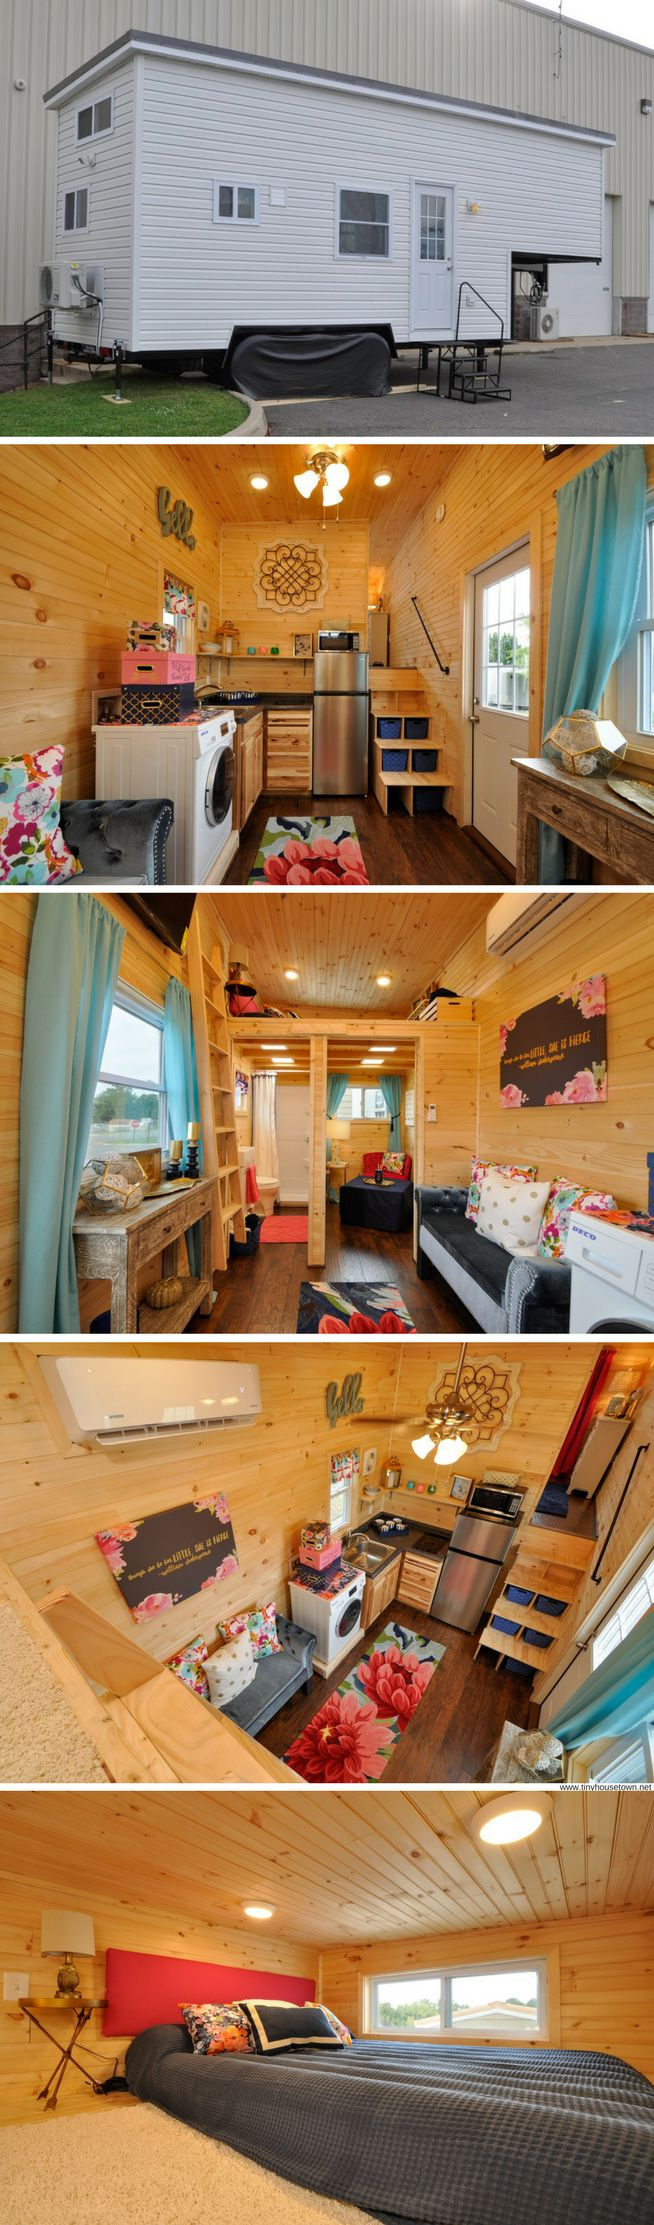 The Georgia: a tiny house that fits three bedrooms into just 315 sq ft!